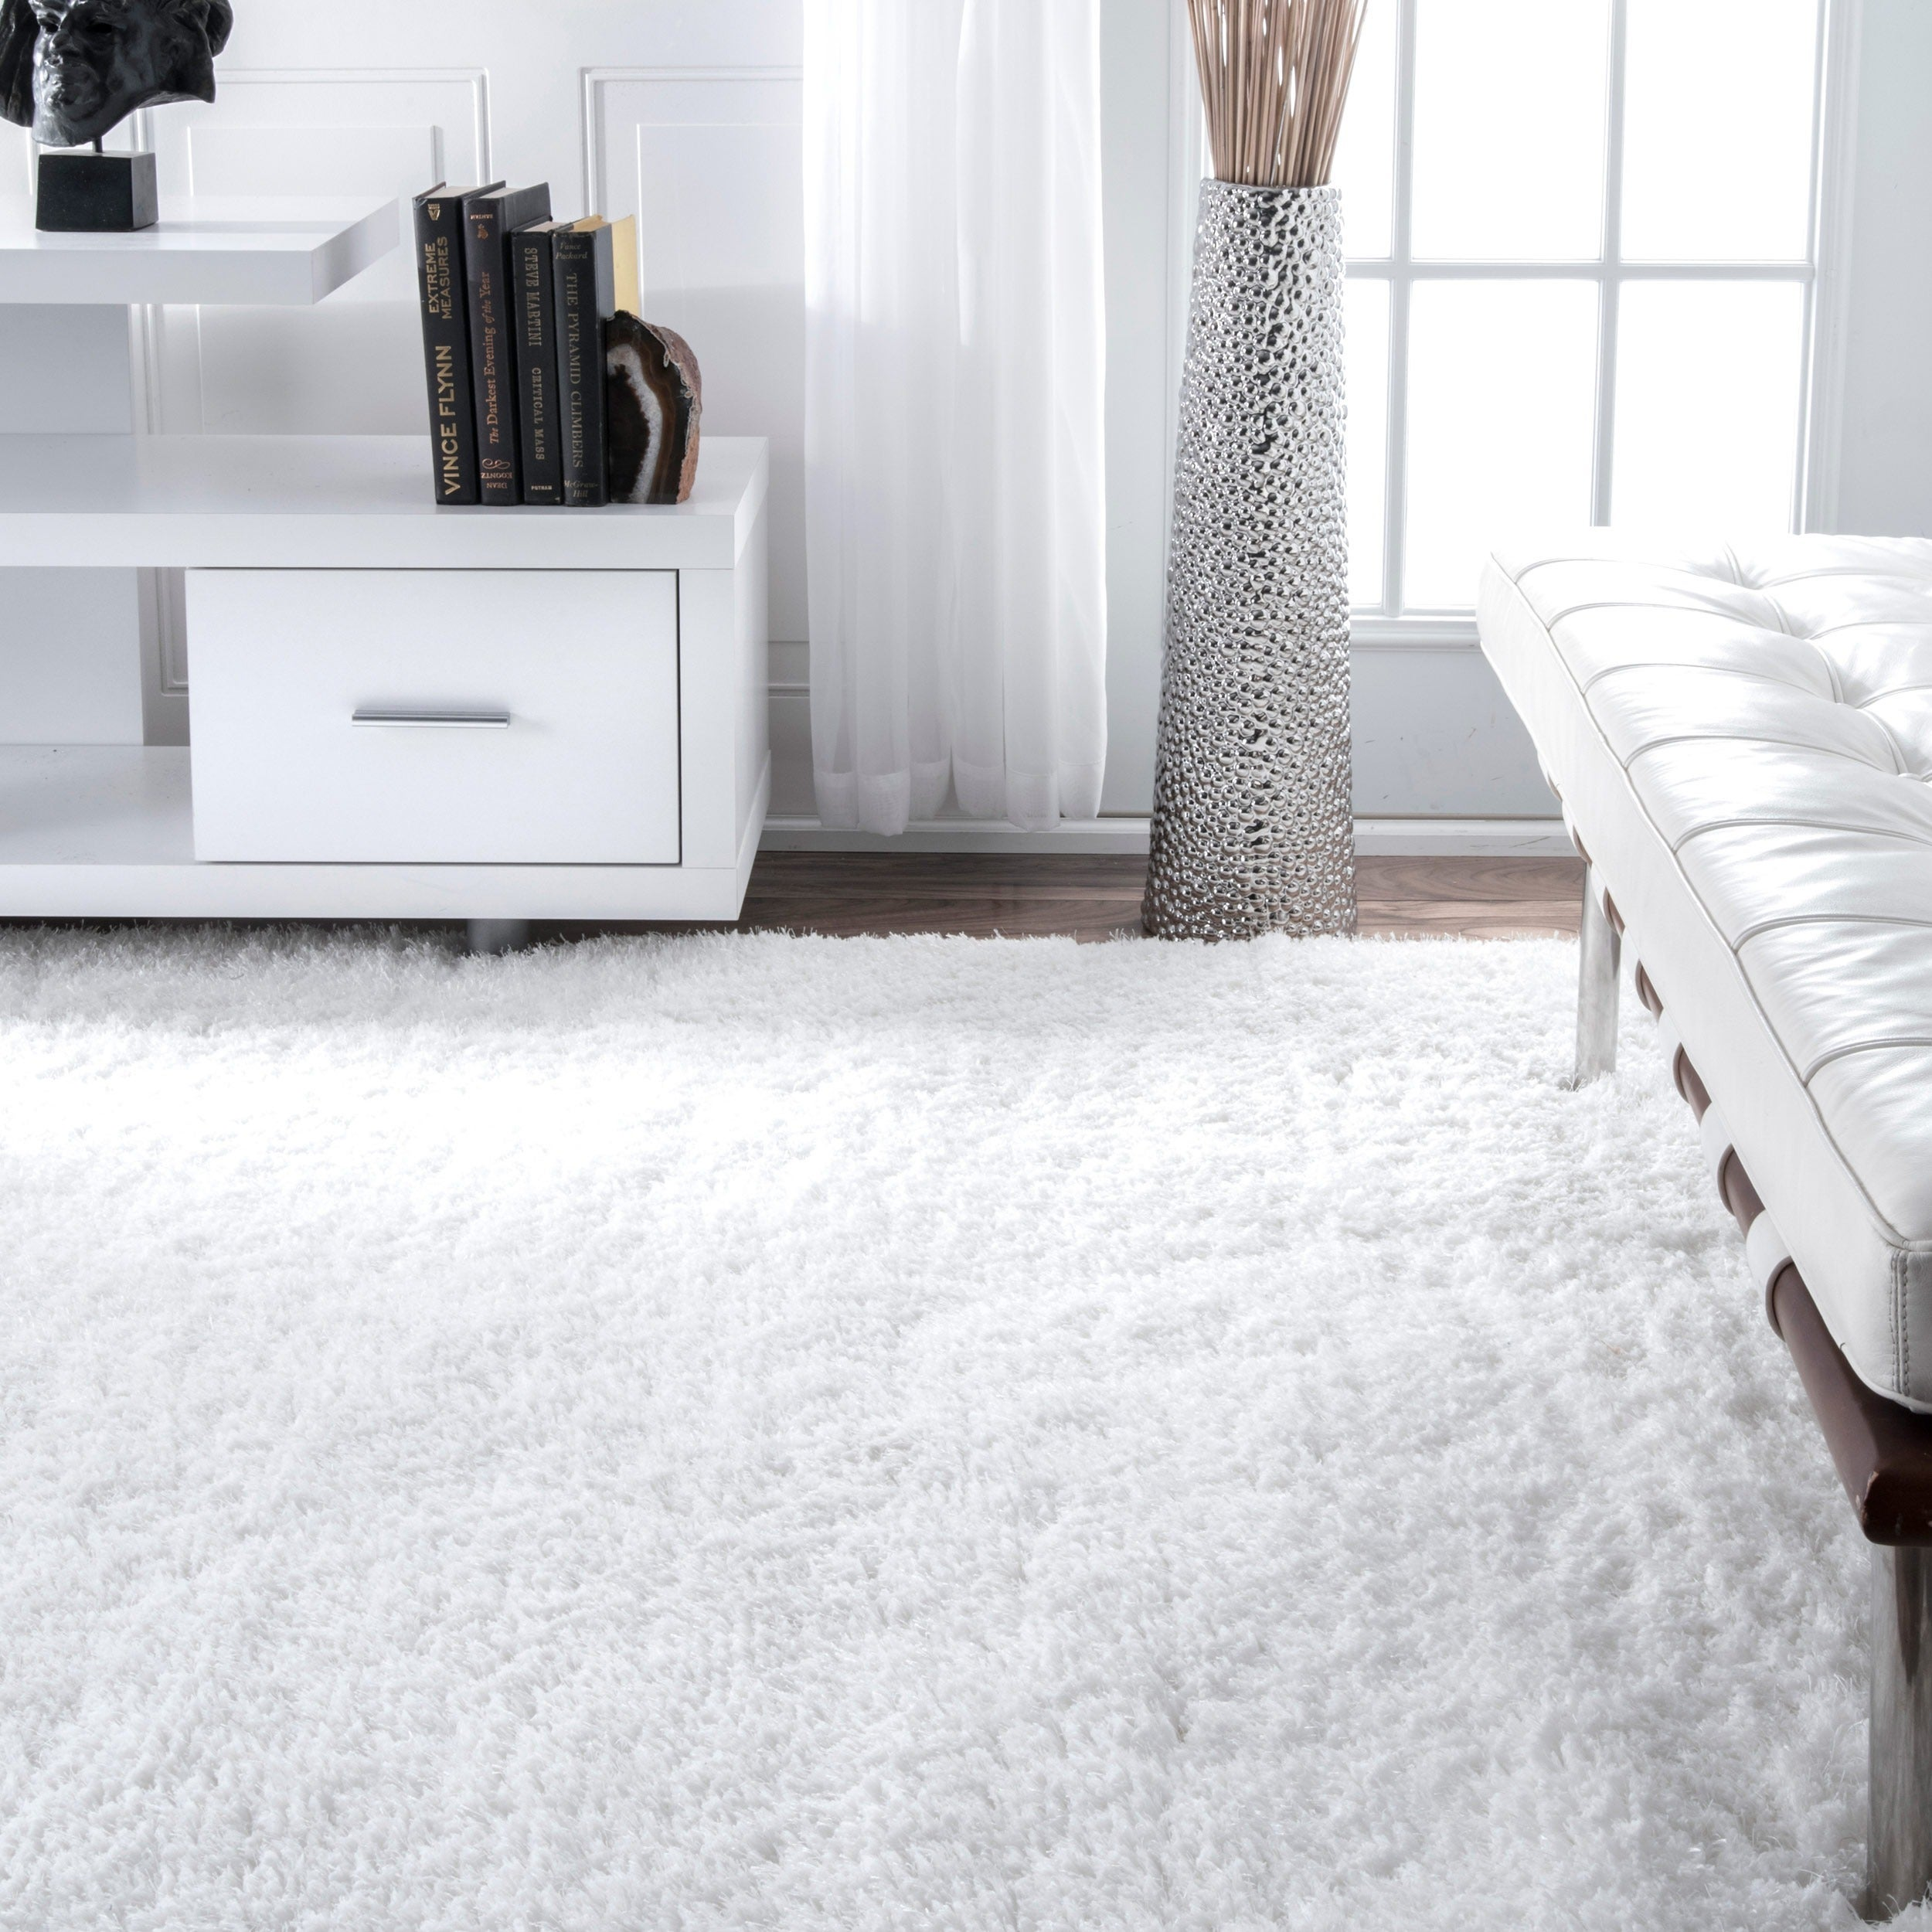 nuLOOM Handmade Solid Soft Plush Shag Rug (4' x 6') at Sears.com